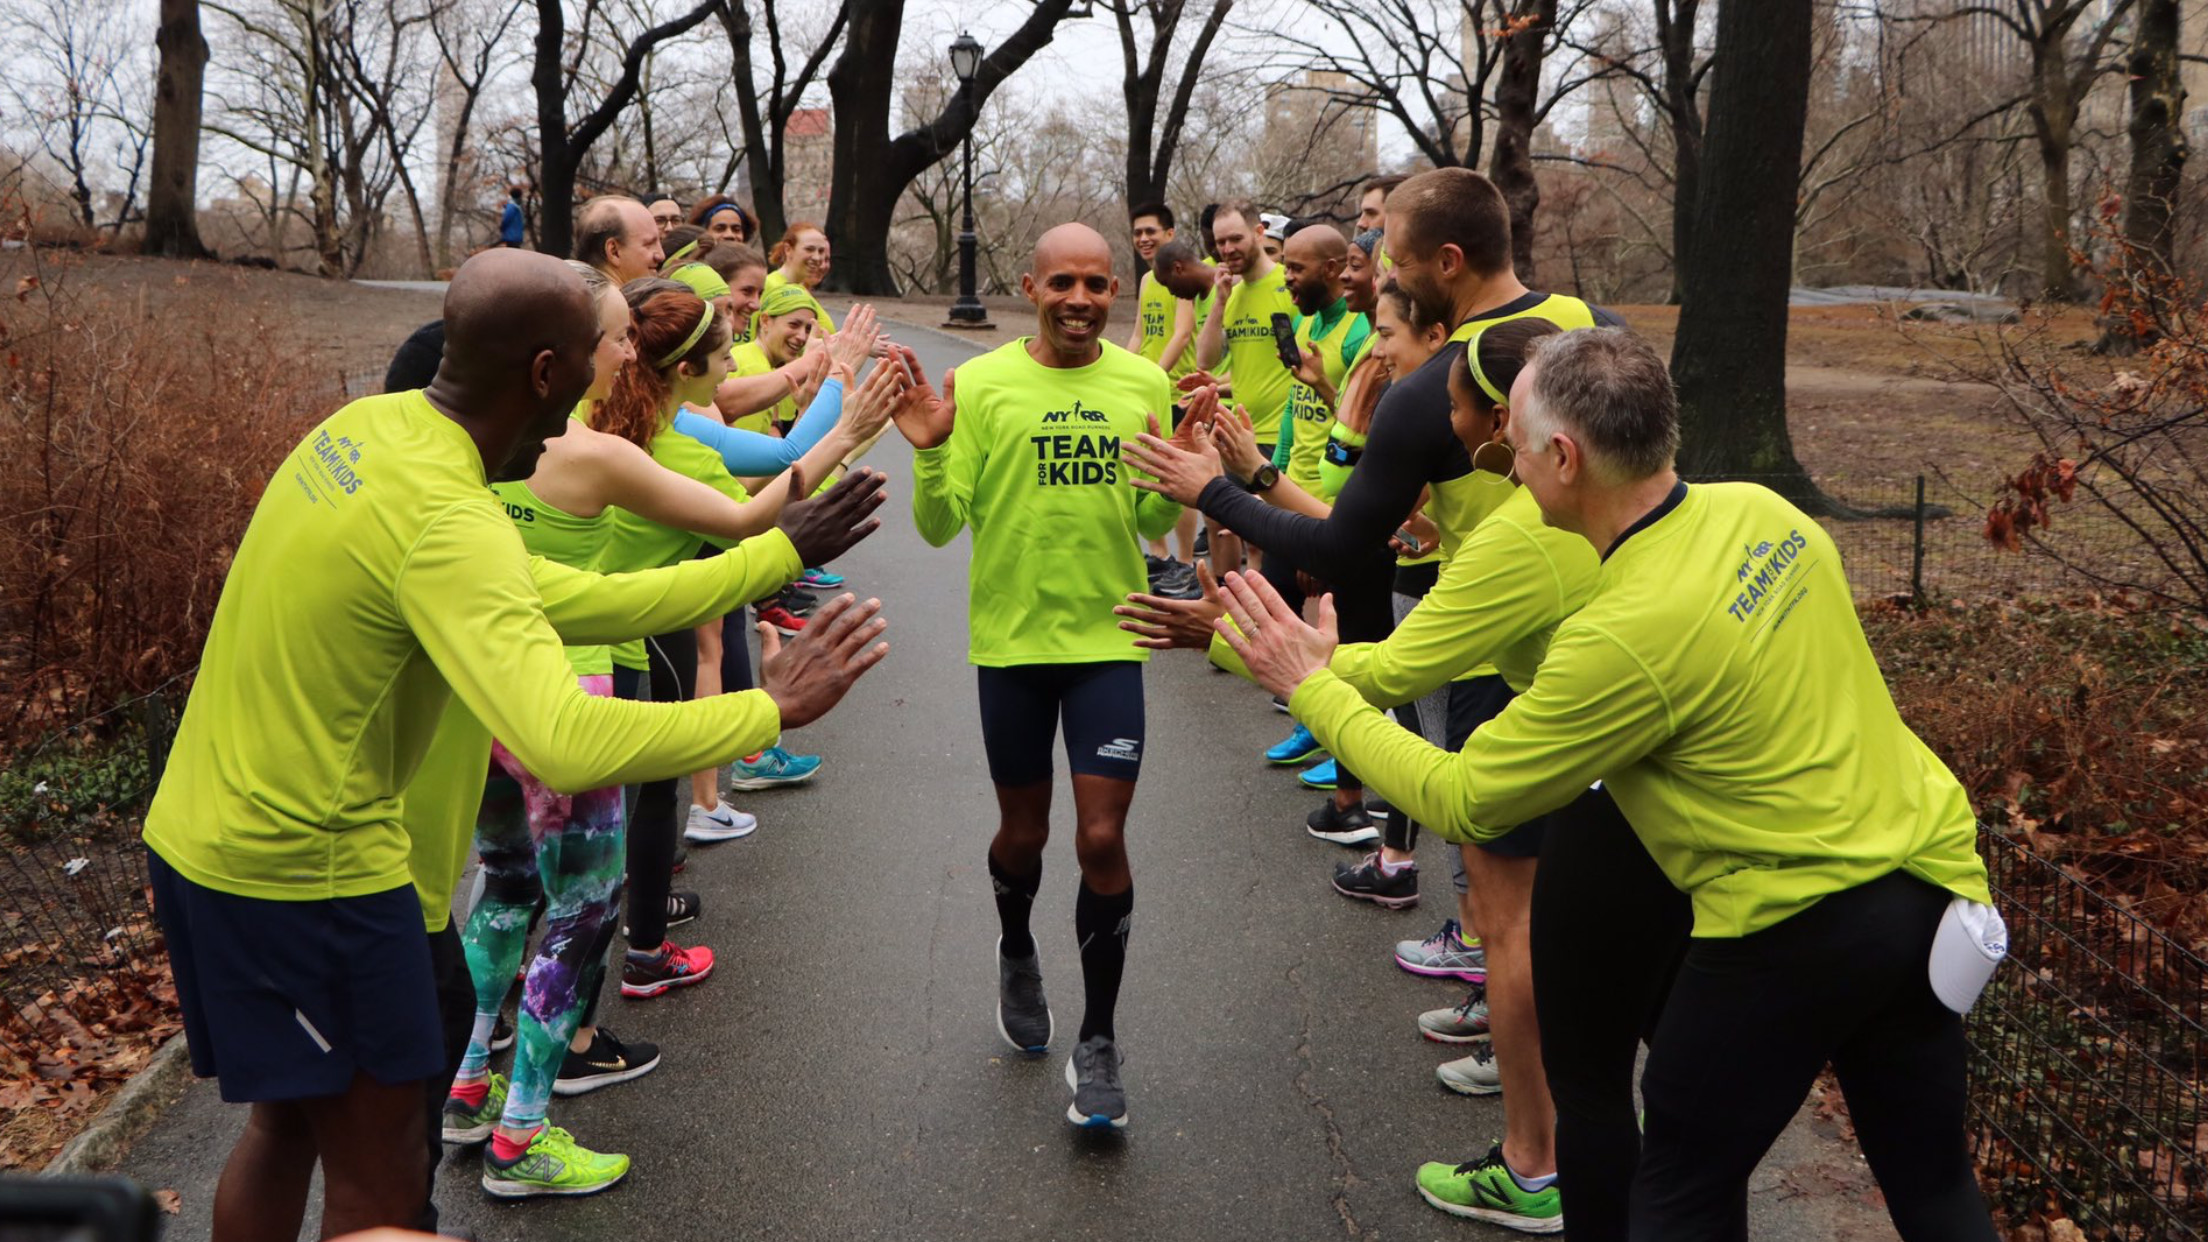 Meb is running the New York City Marathon again this year but not up front